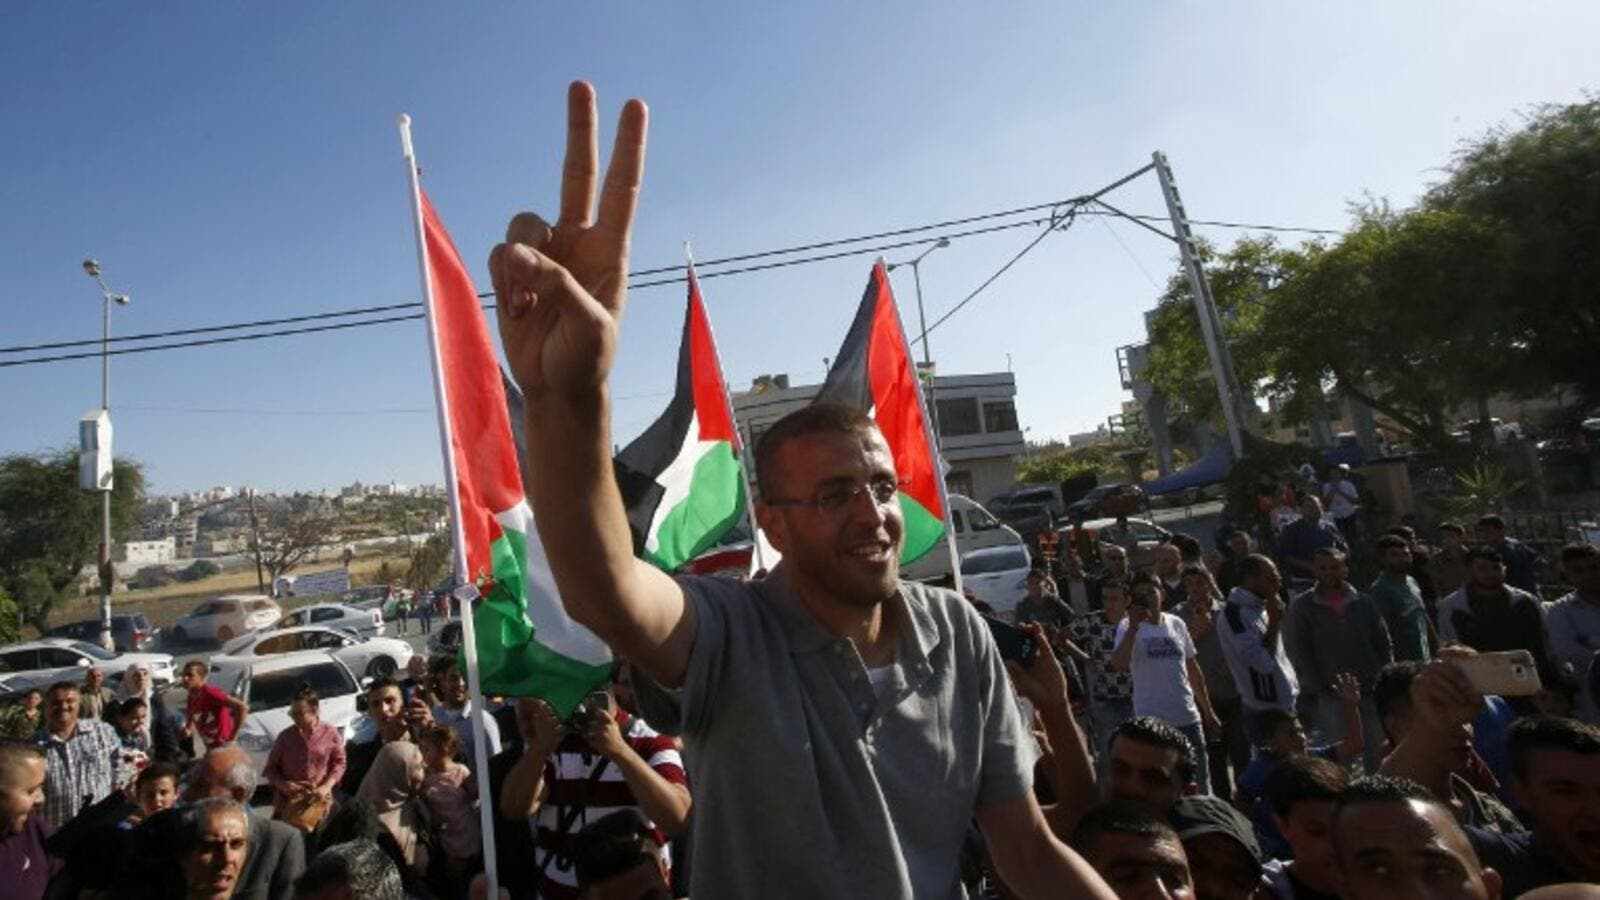 Mohammed al-Qiq flashes a peace sign as he arrives back to his village in the West Bank. (AFP/Hazem Bader)